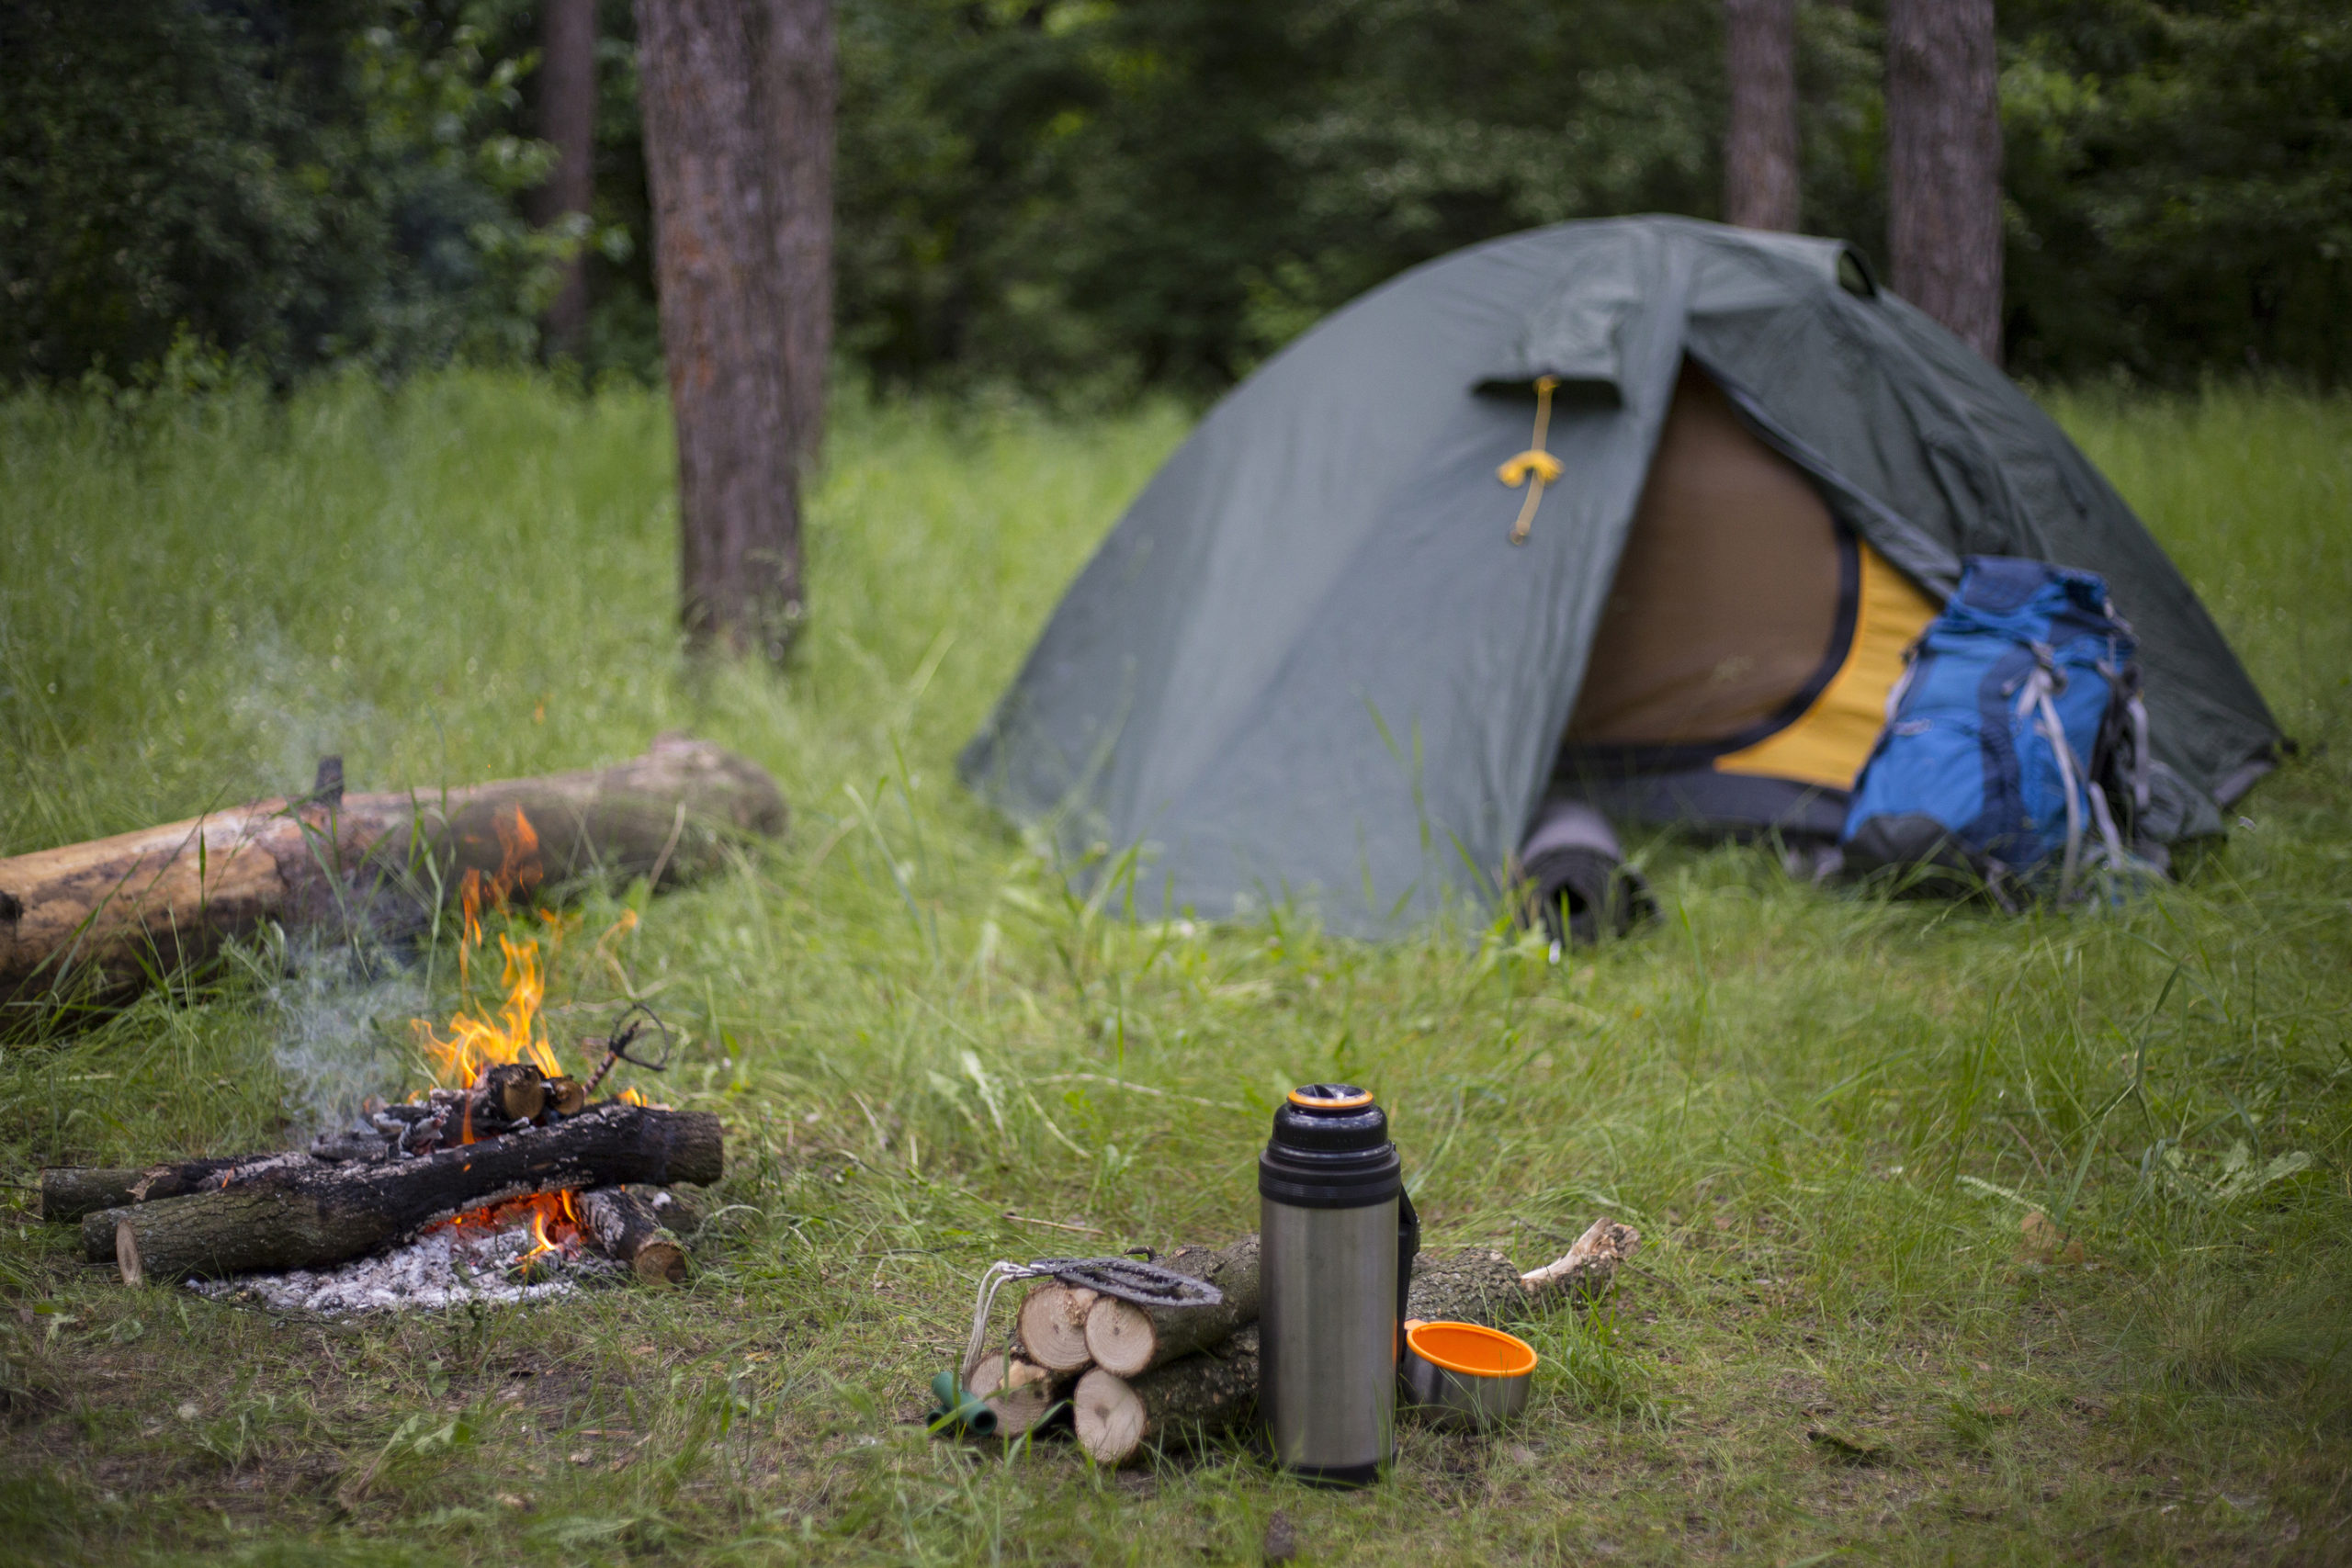 Common Camping Mistakes